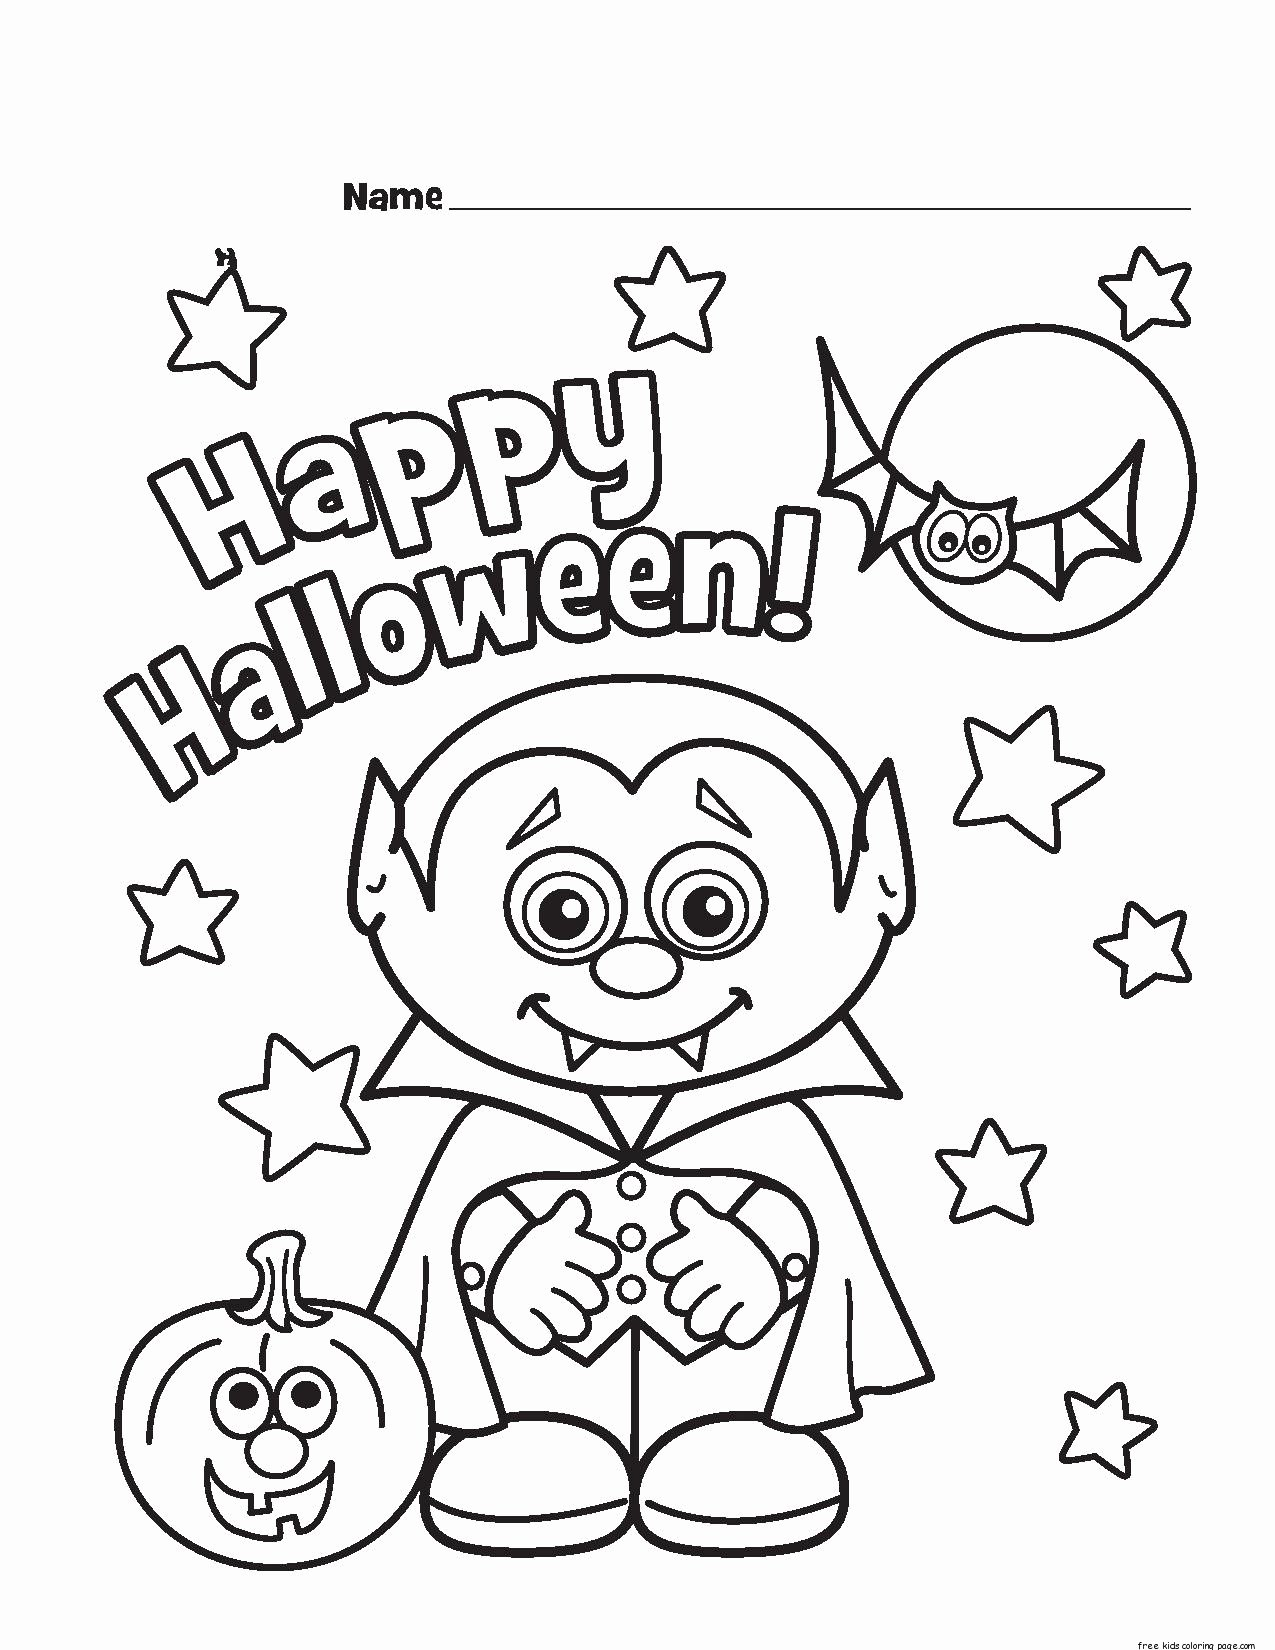 Free Printable Halloween Pictures Lovely Halloween Little Vampire Printable Coloring Pages for